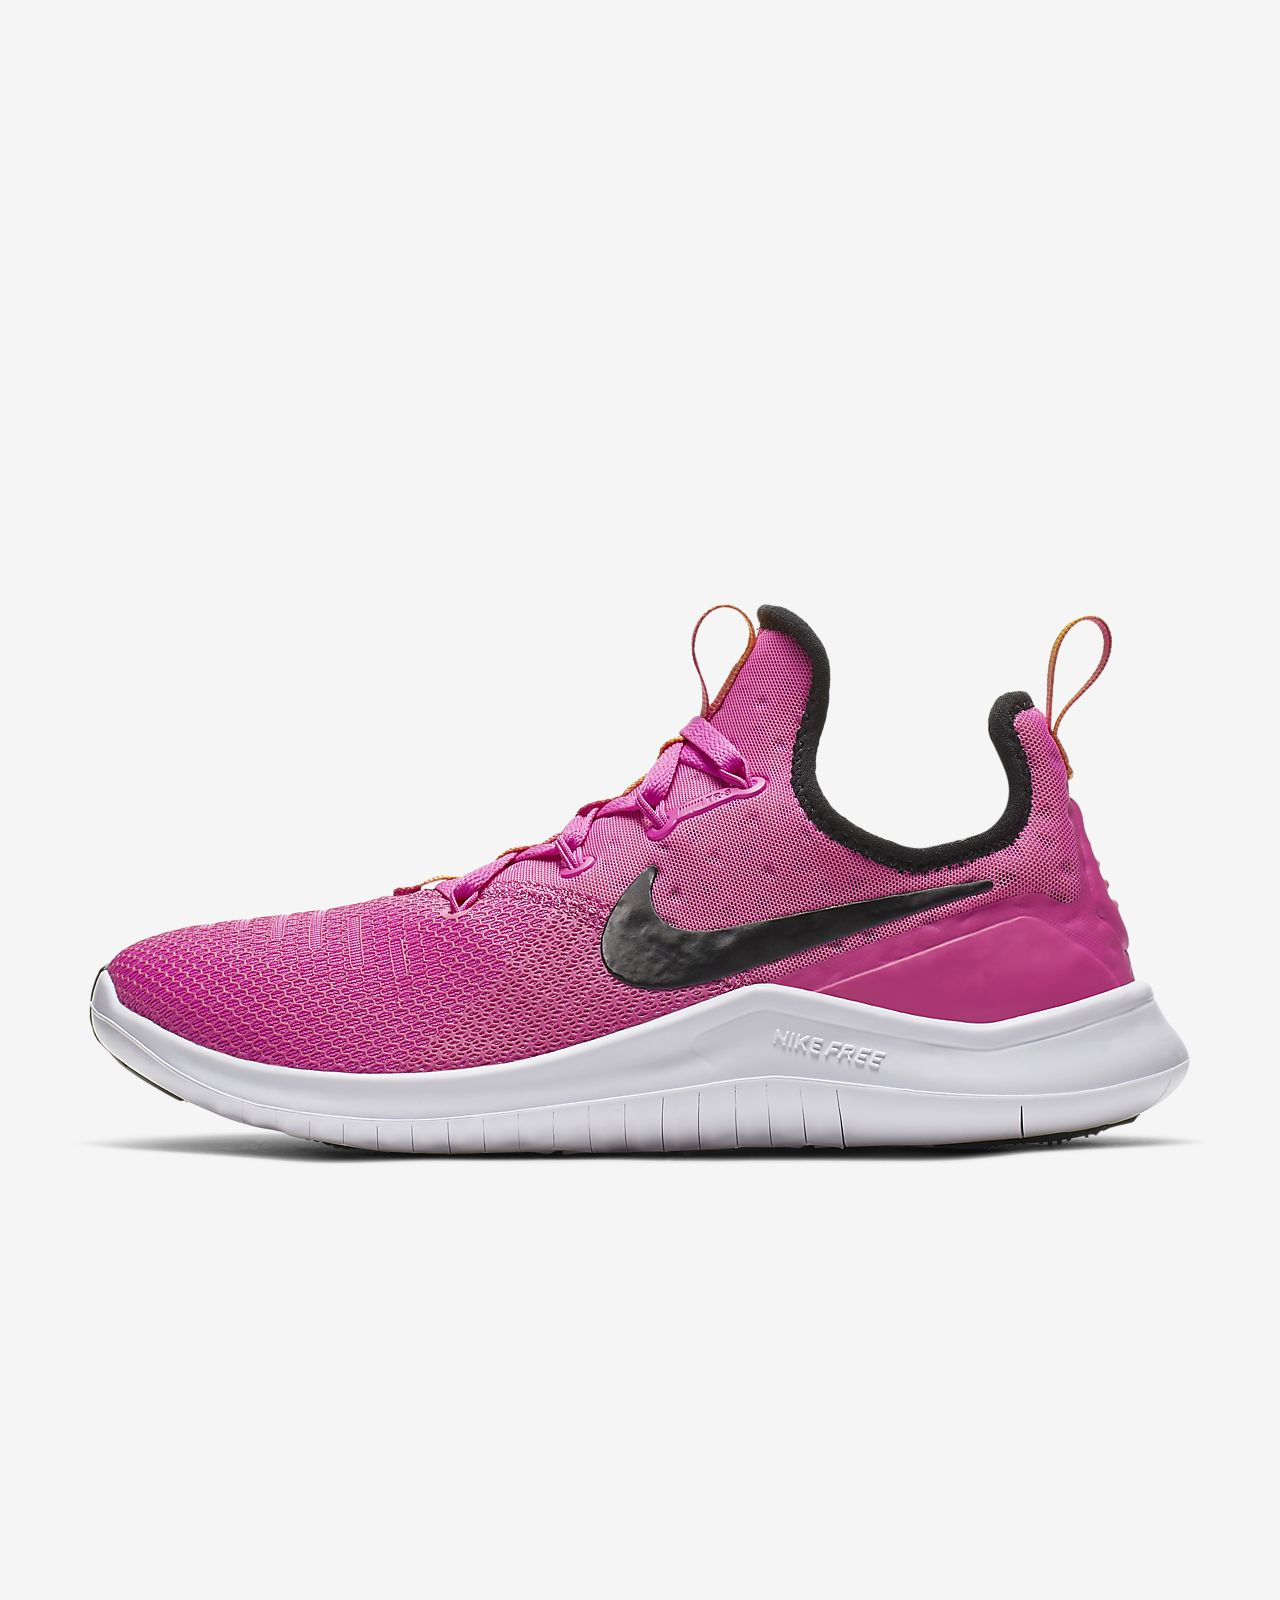 info for 882d0 a9de2 Women s Gym HIIT Cross Training Shoe. Nike Free TR8